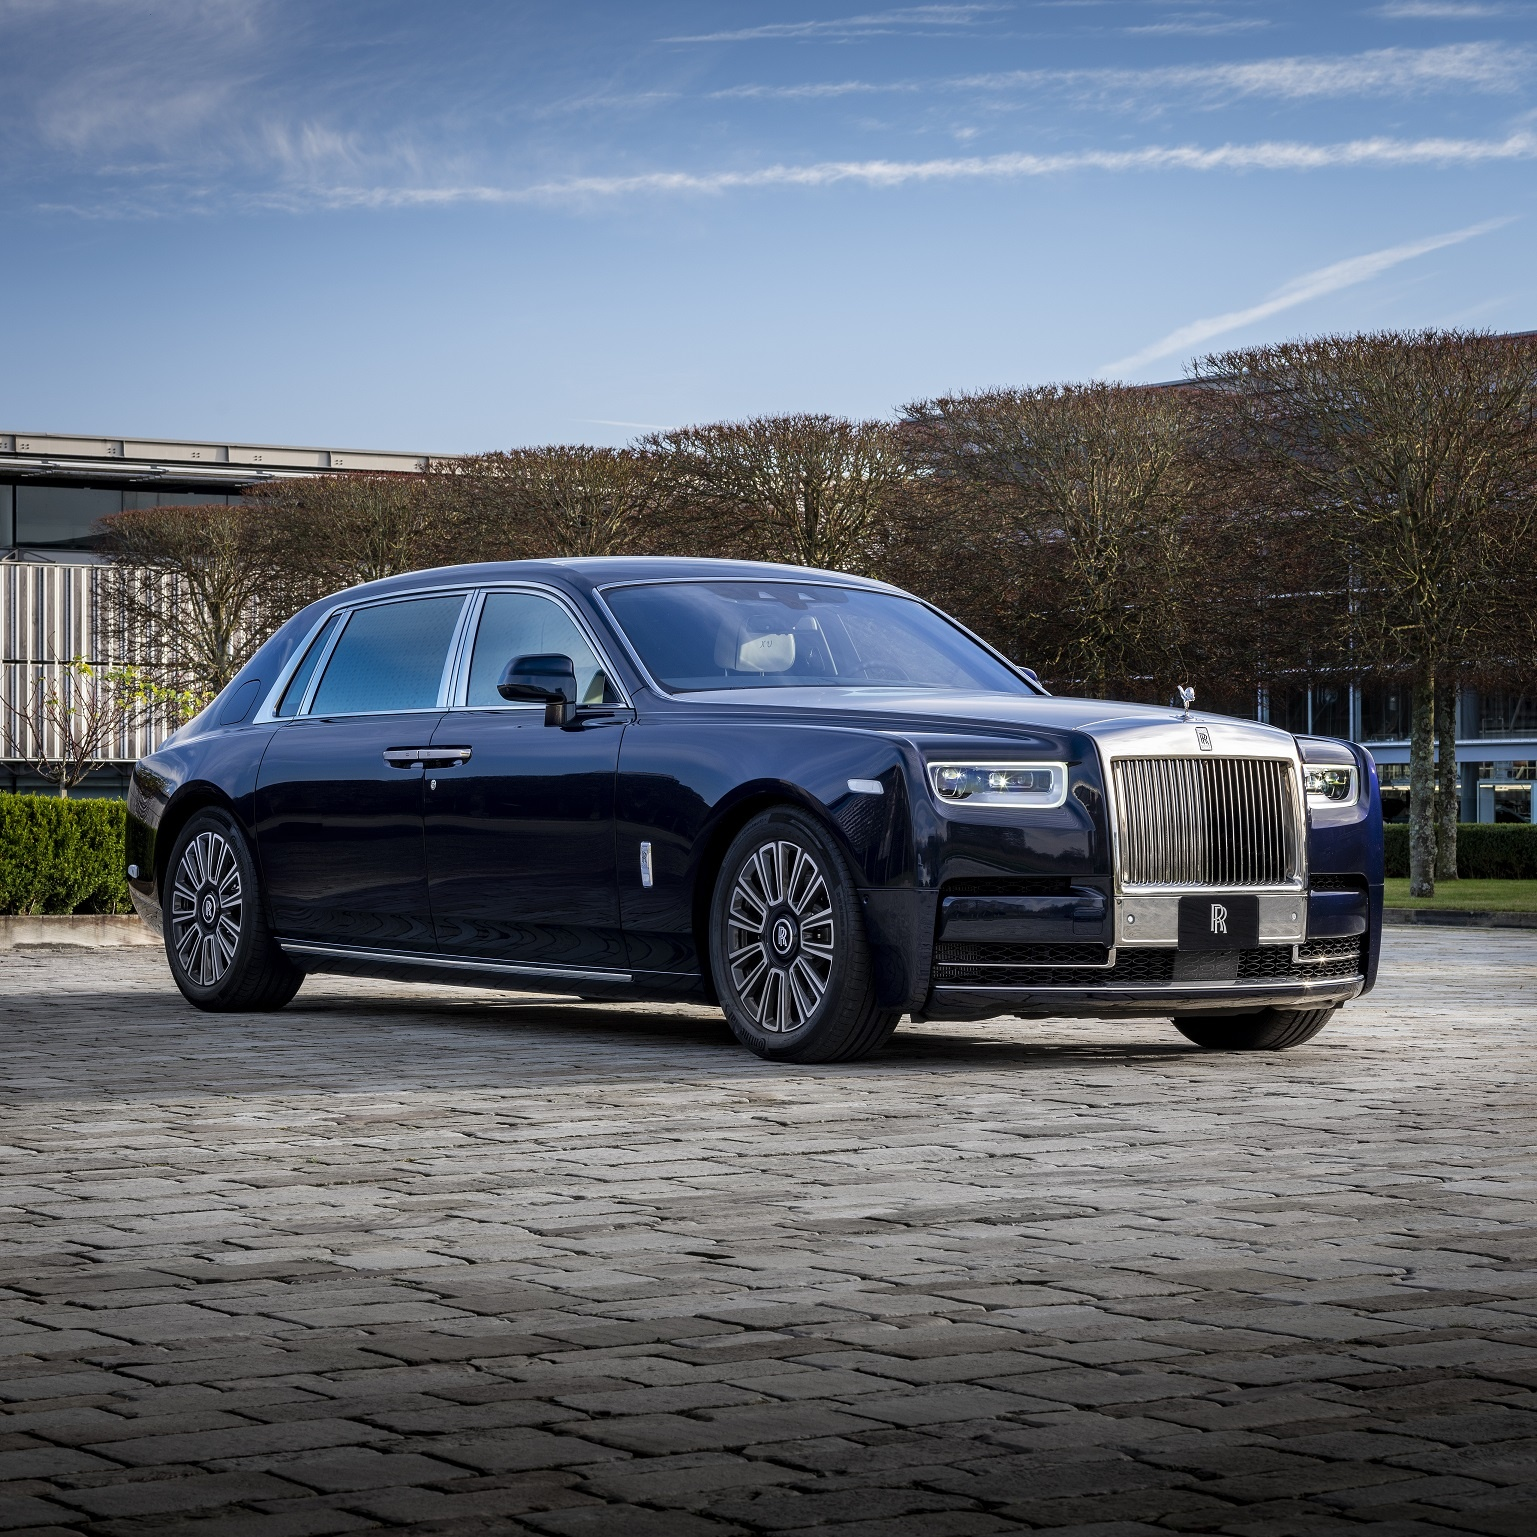 ROLLS-ROYCE CLIENTS SEEK SOLACE IN BESPOKE CREATIVITY DURING 2020